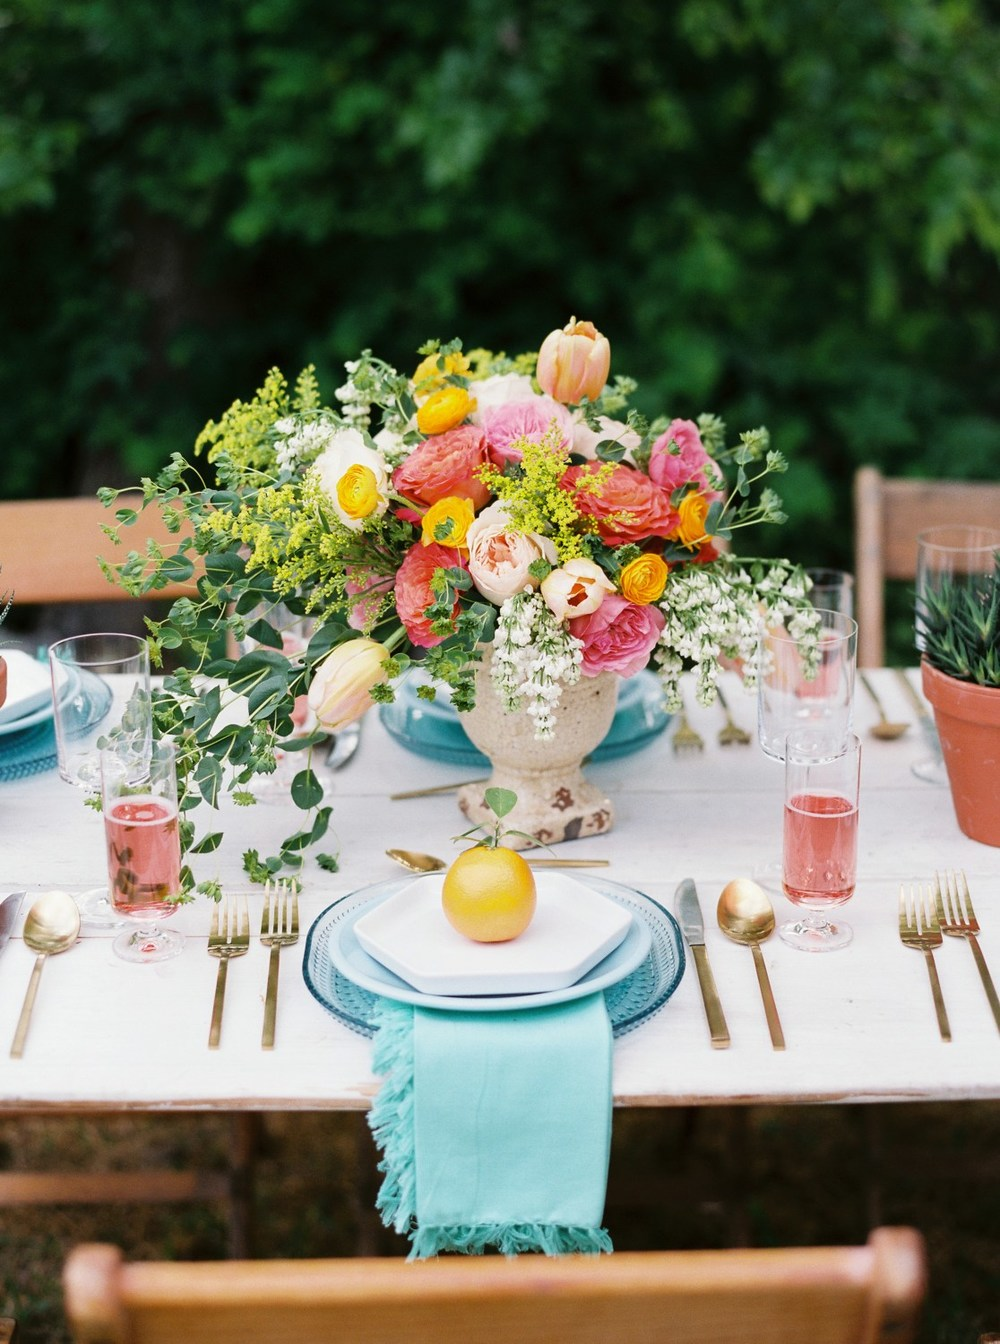 Summer Tables Inspiration For Your Next Dinner Party